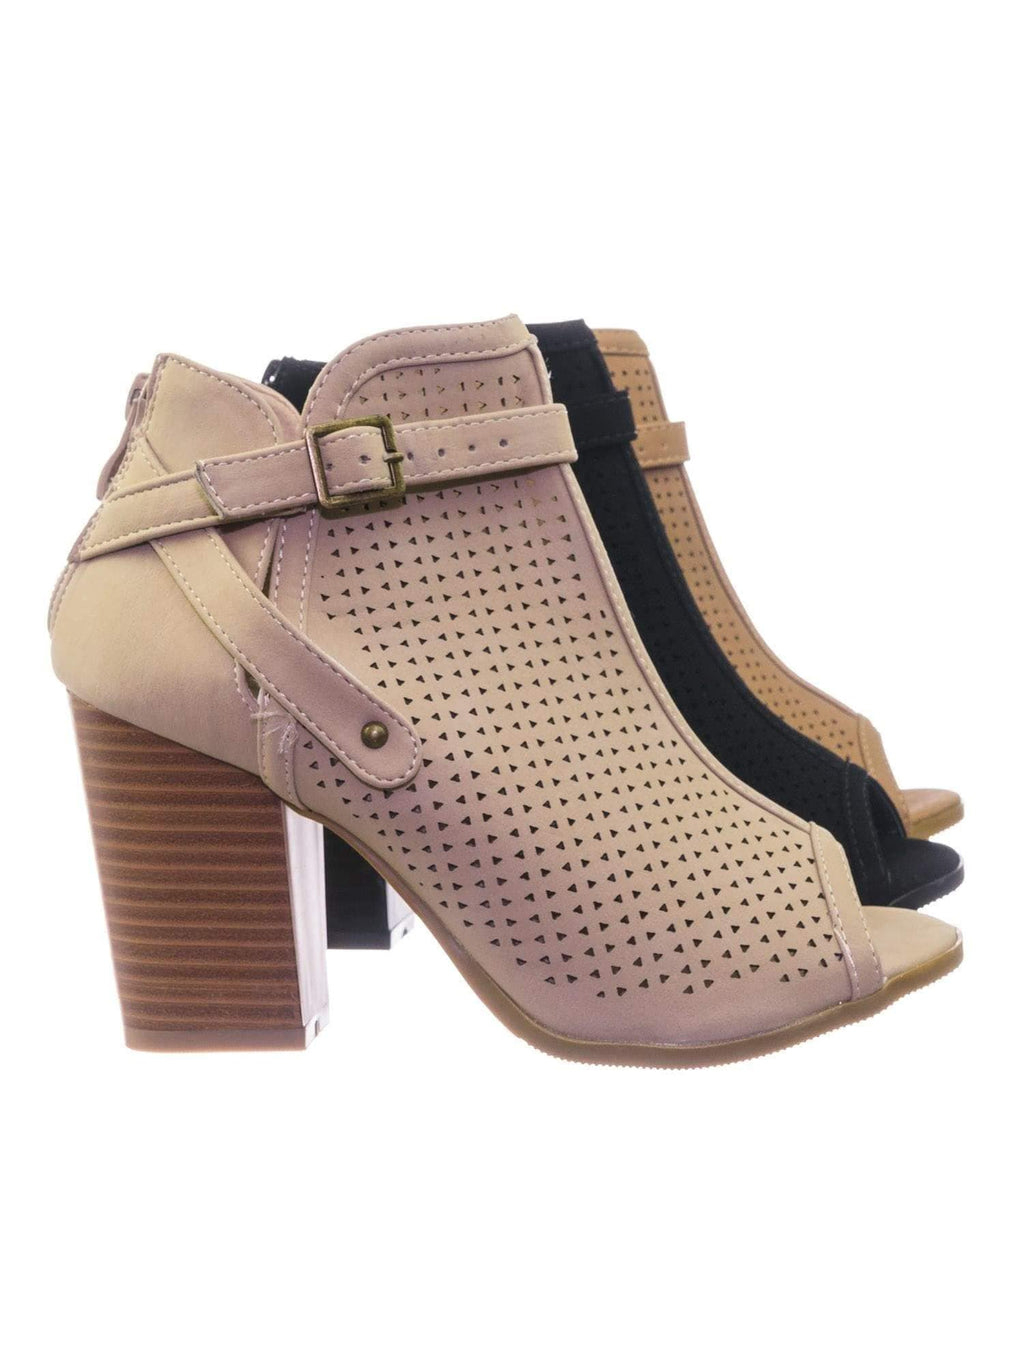 Glenda99 Beige Biker's Stack Block Heel Peep Toe Perforated Cutout Ankle Booties